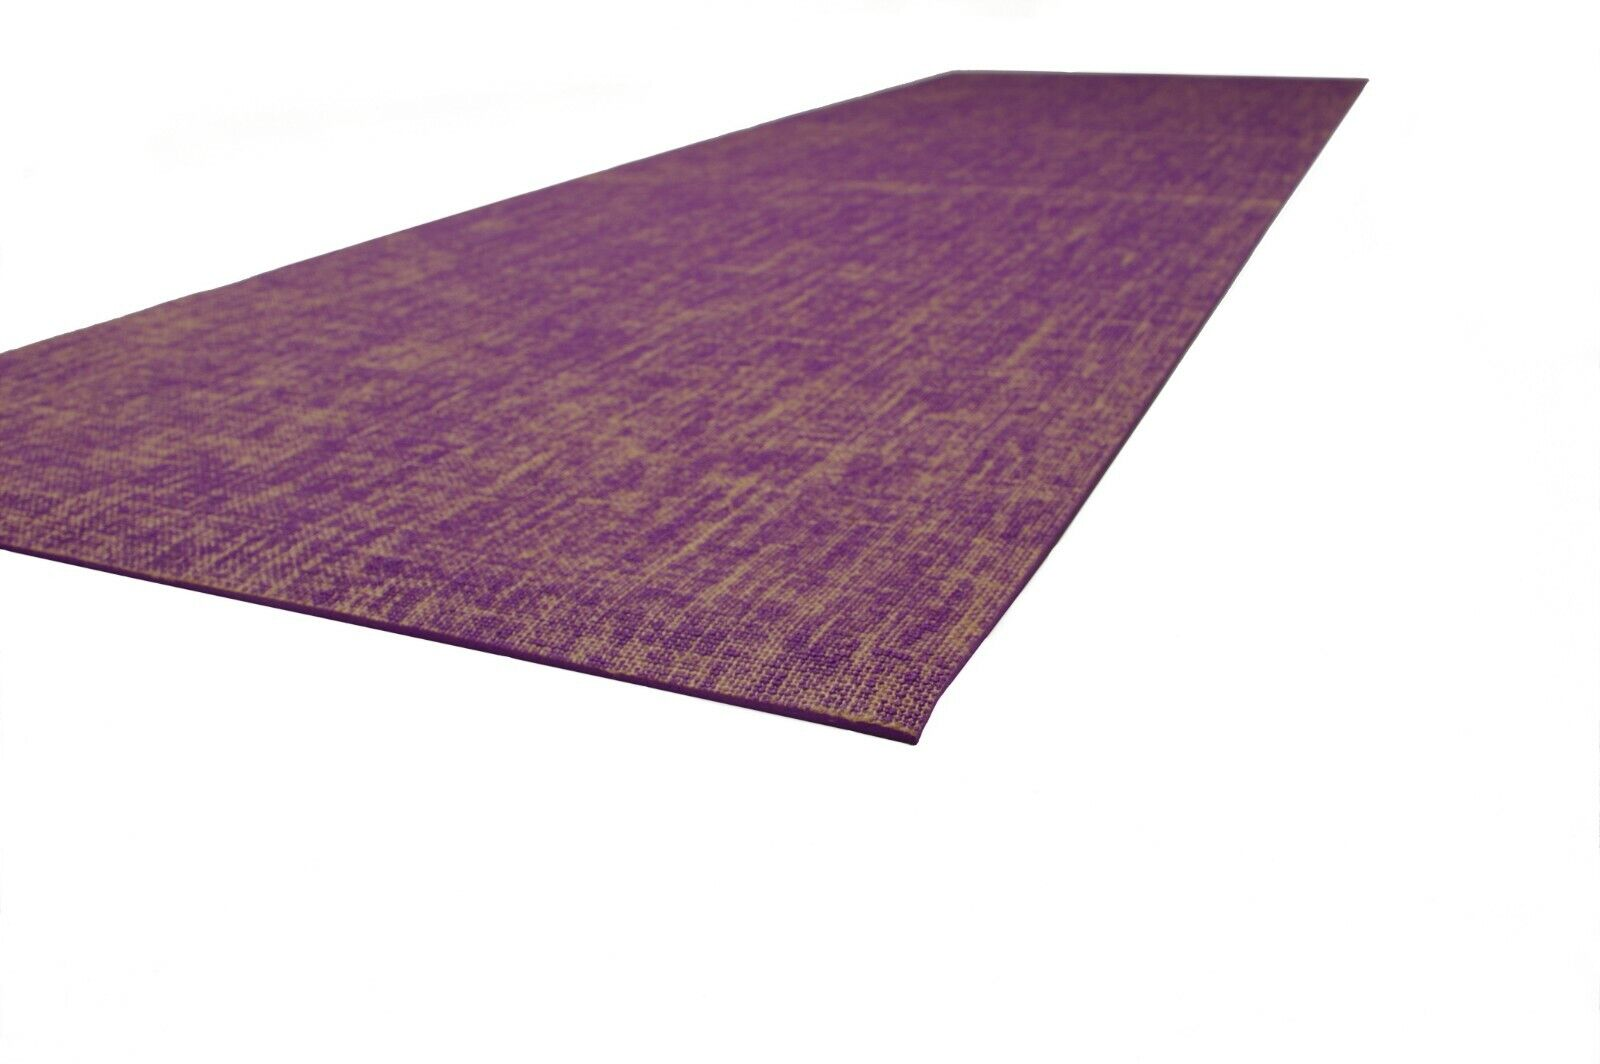 Wholesale Box of 8 Yoga Mats. lila with Jute woven into top surface